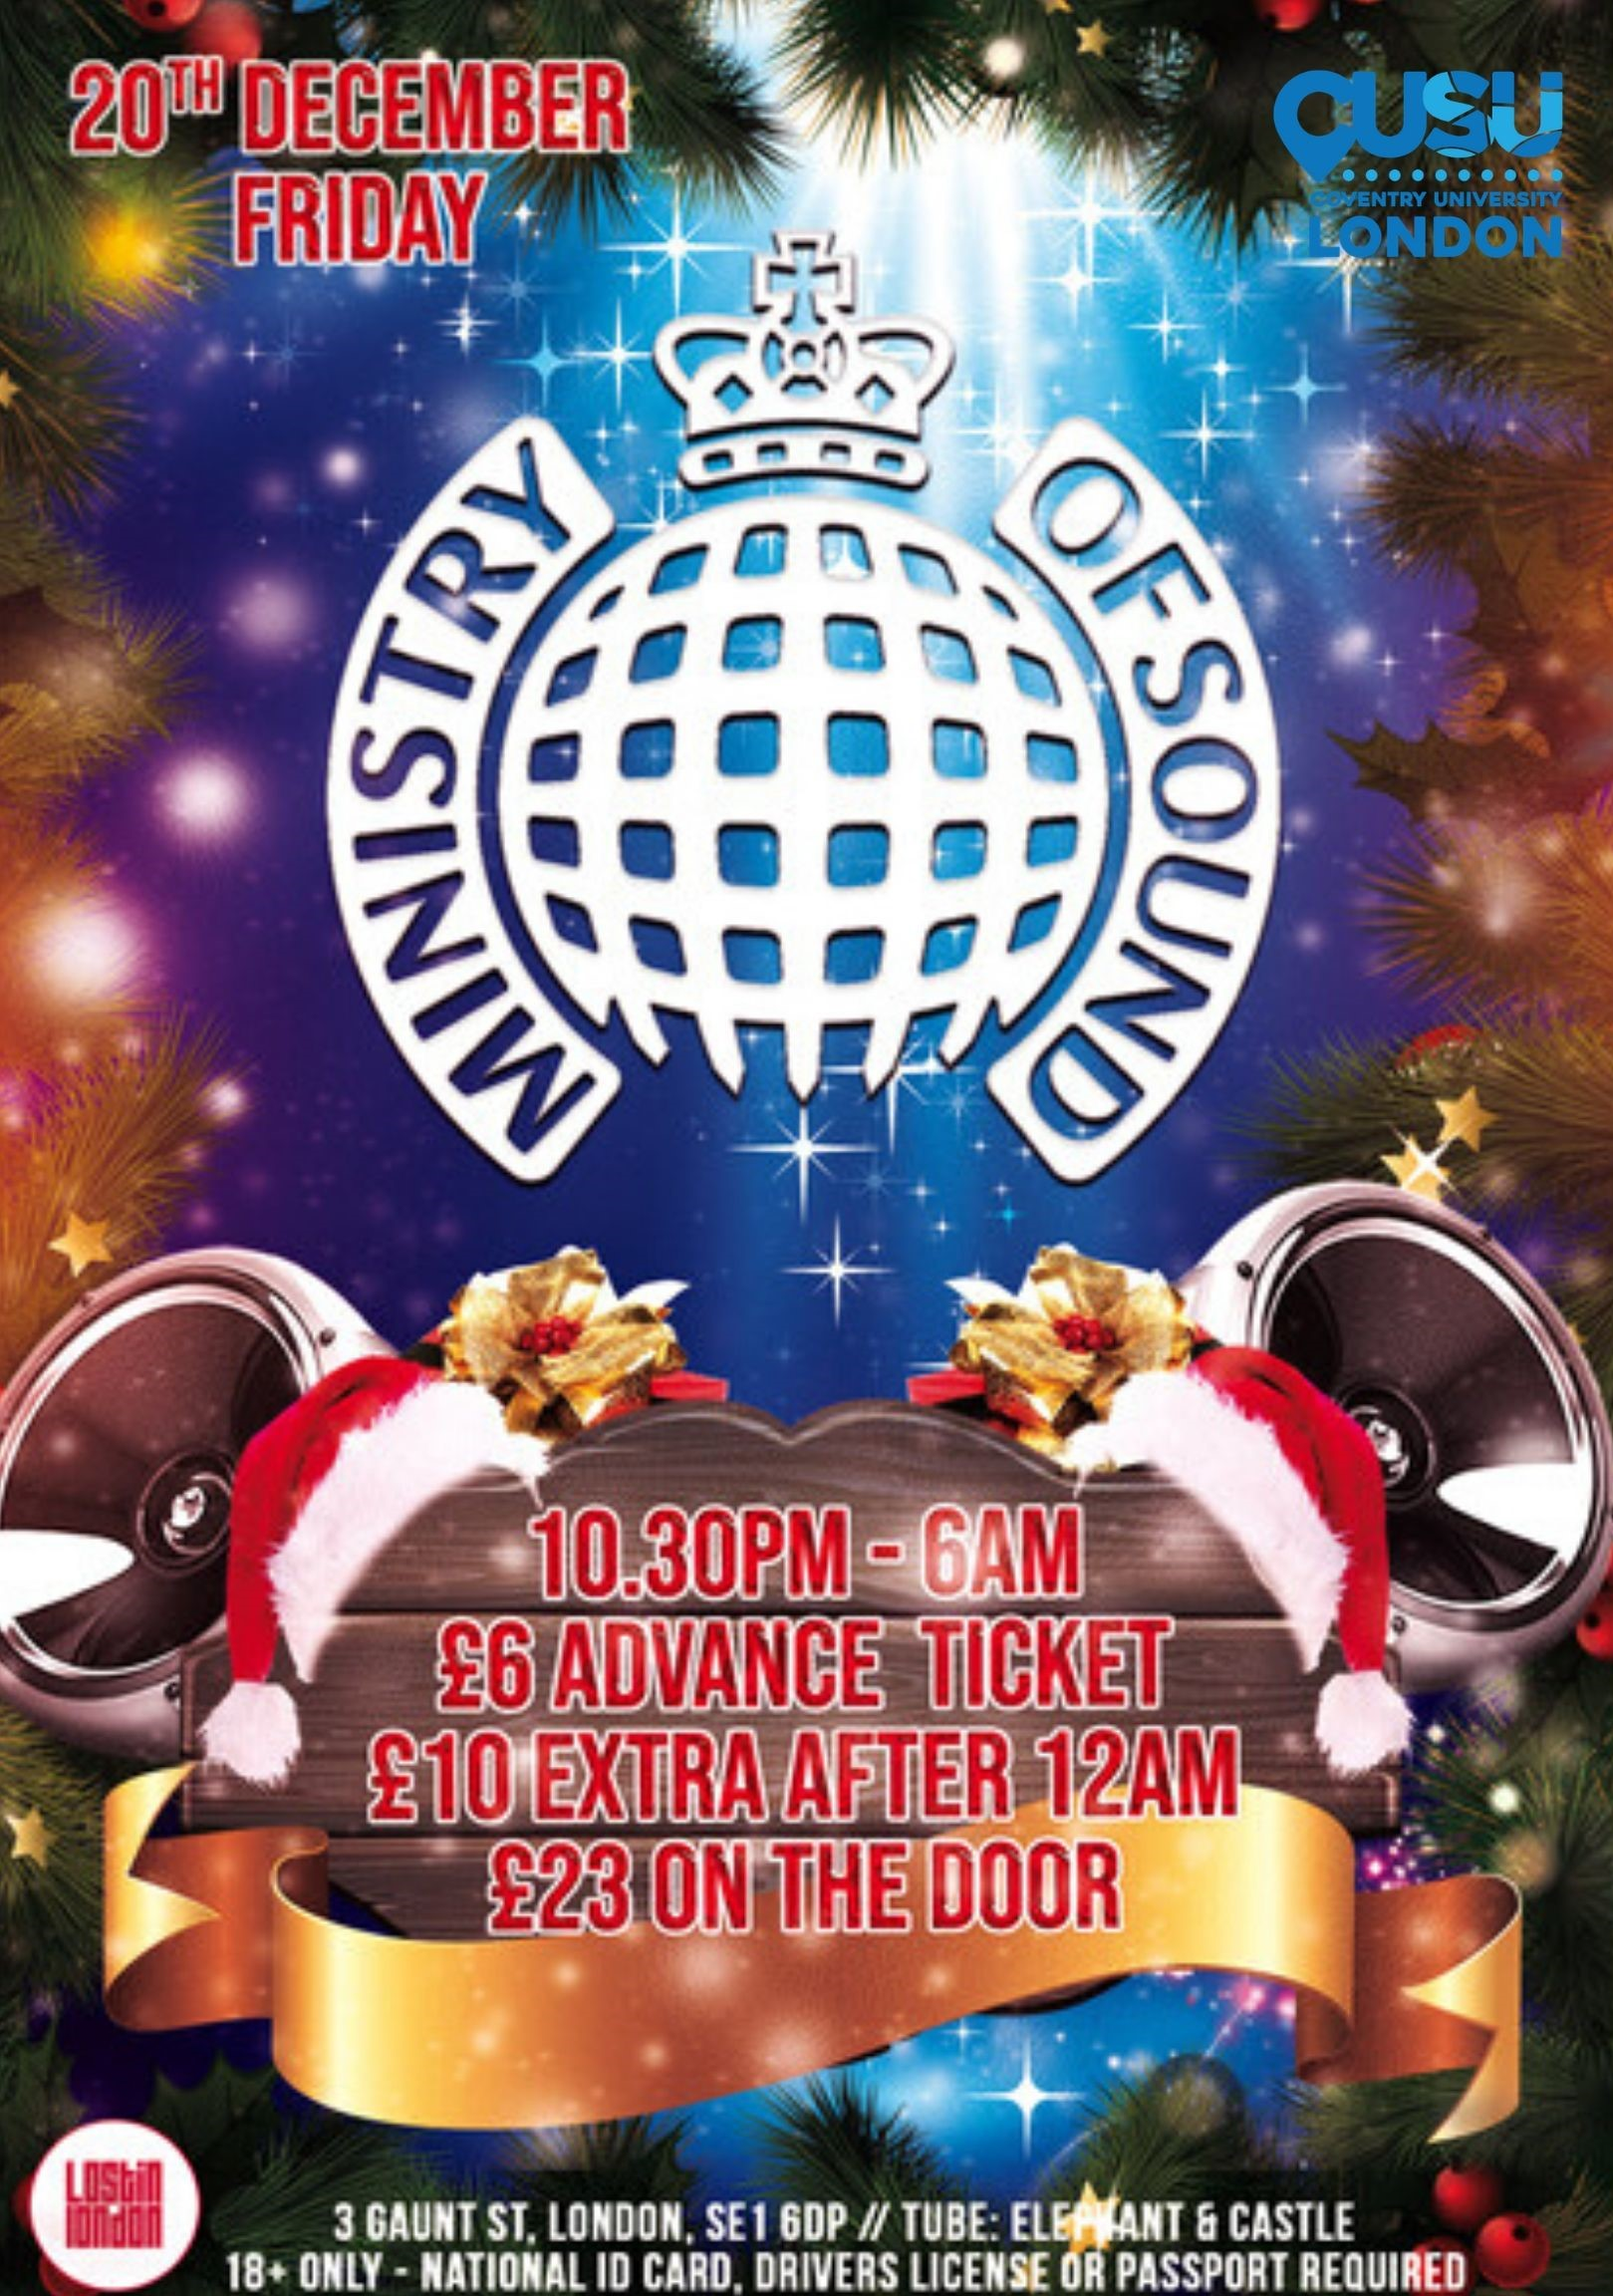 Ministry of Sound Winter Party!